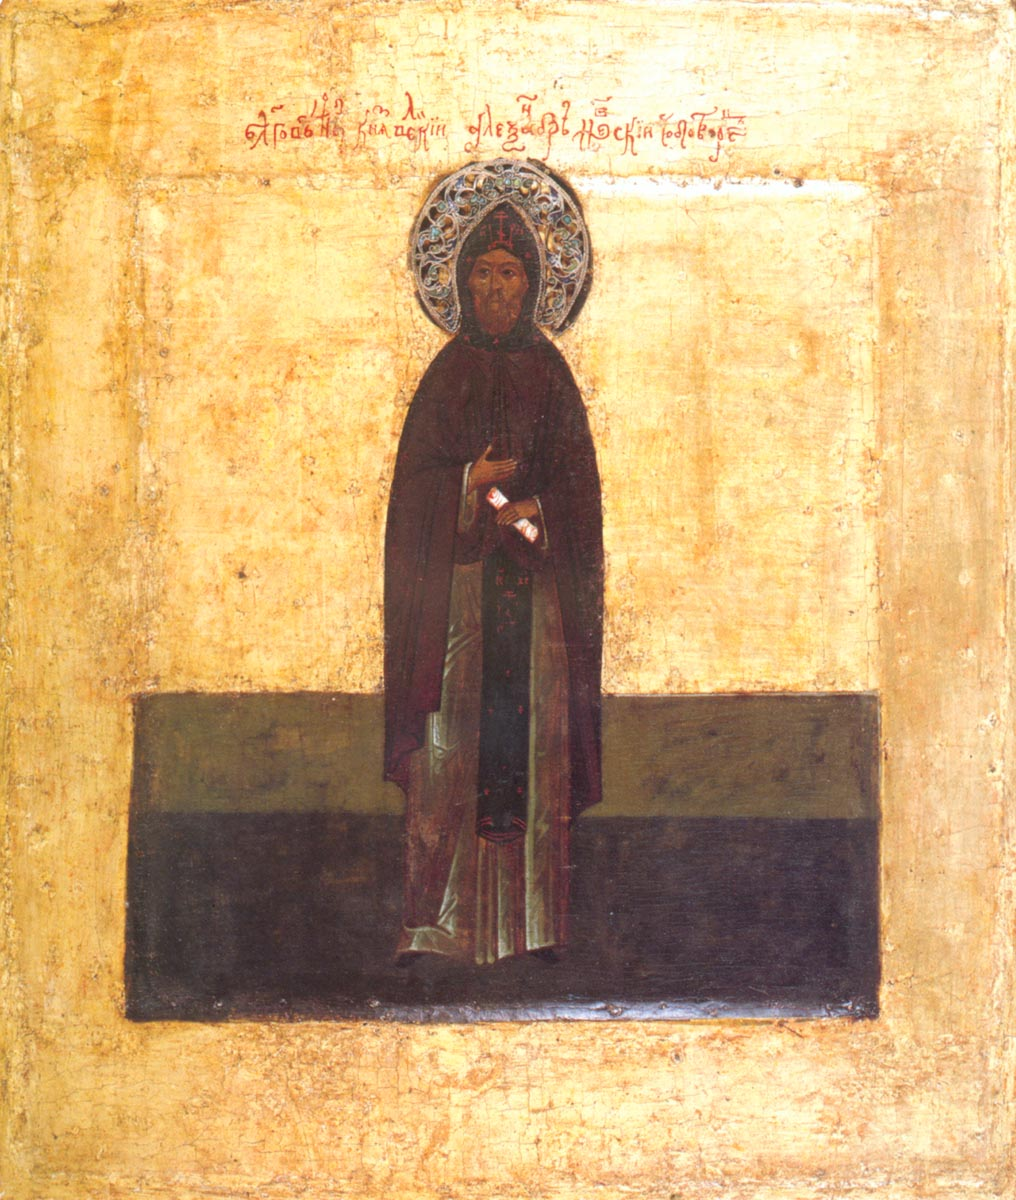 The seven-pointed icon. The Importance of the Image in Russian Iconography